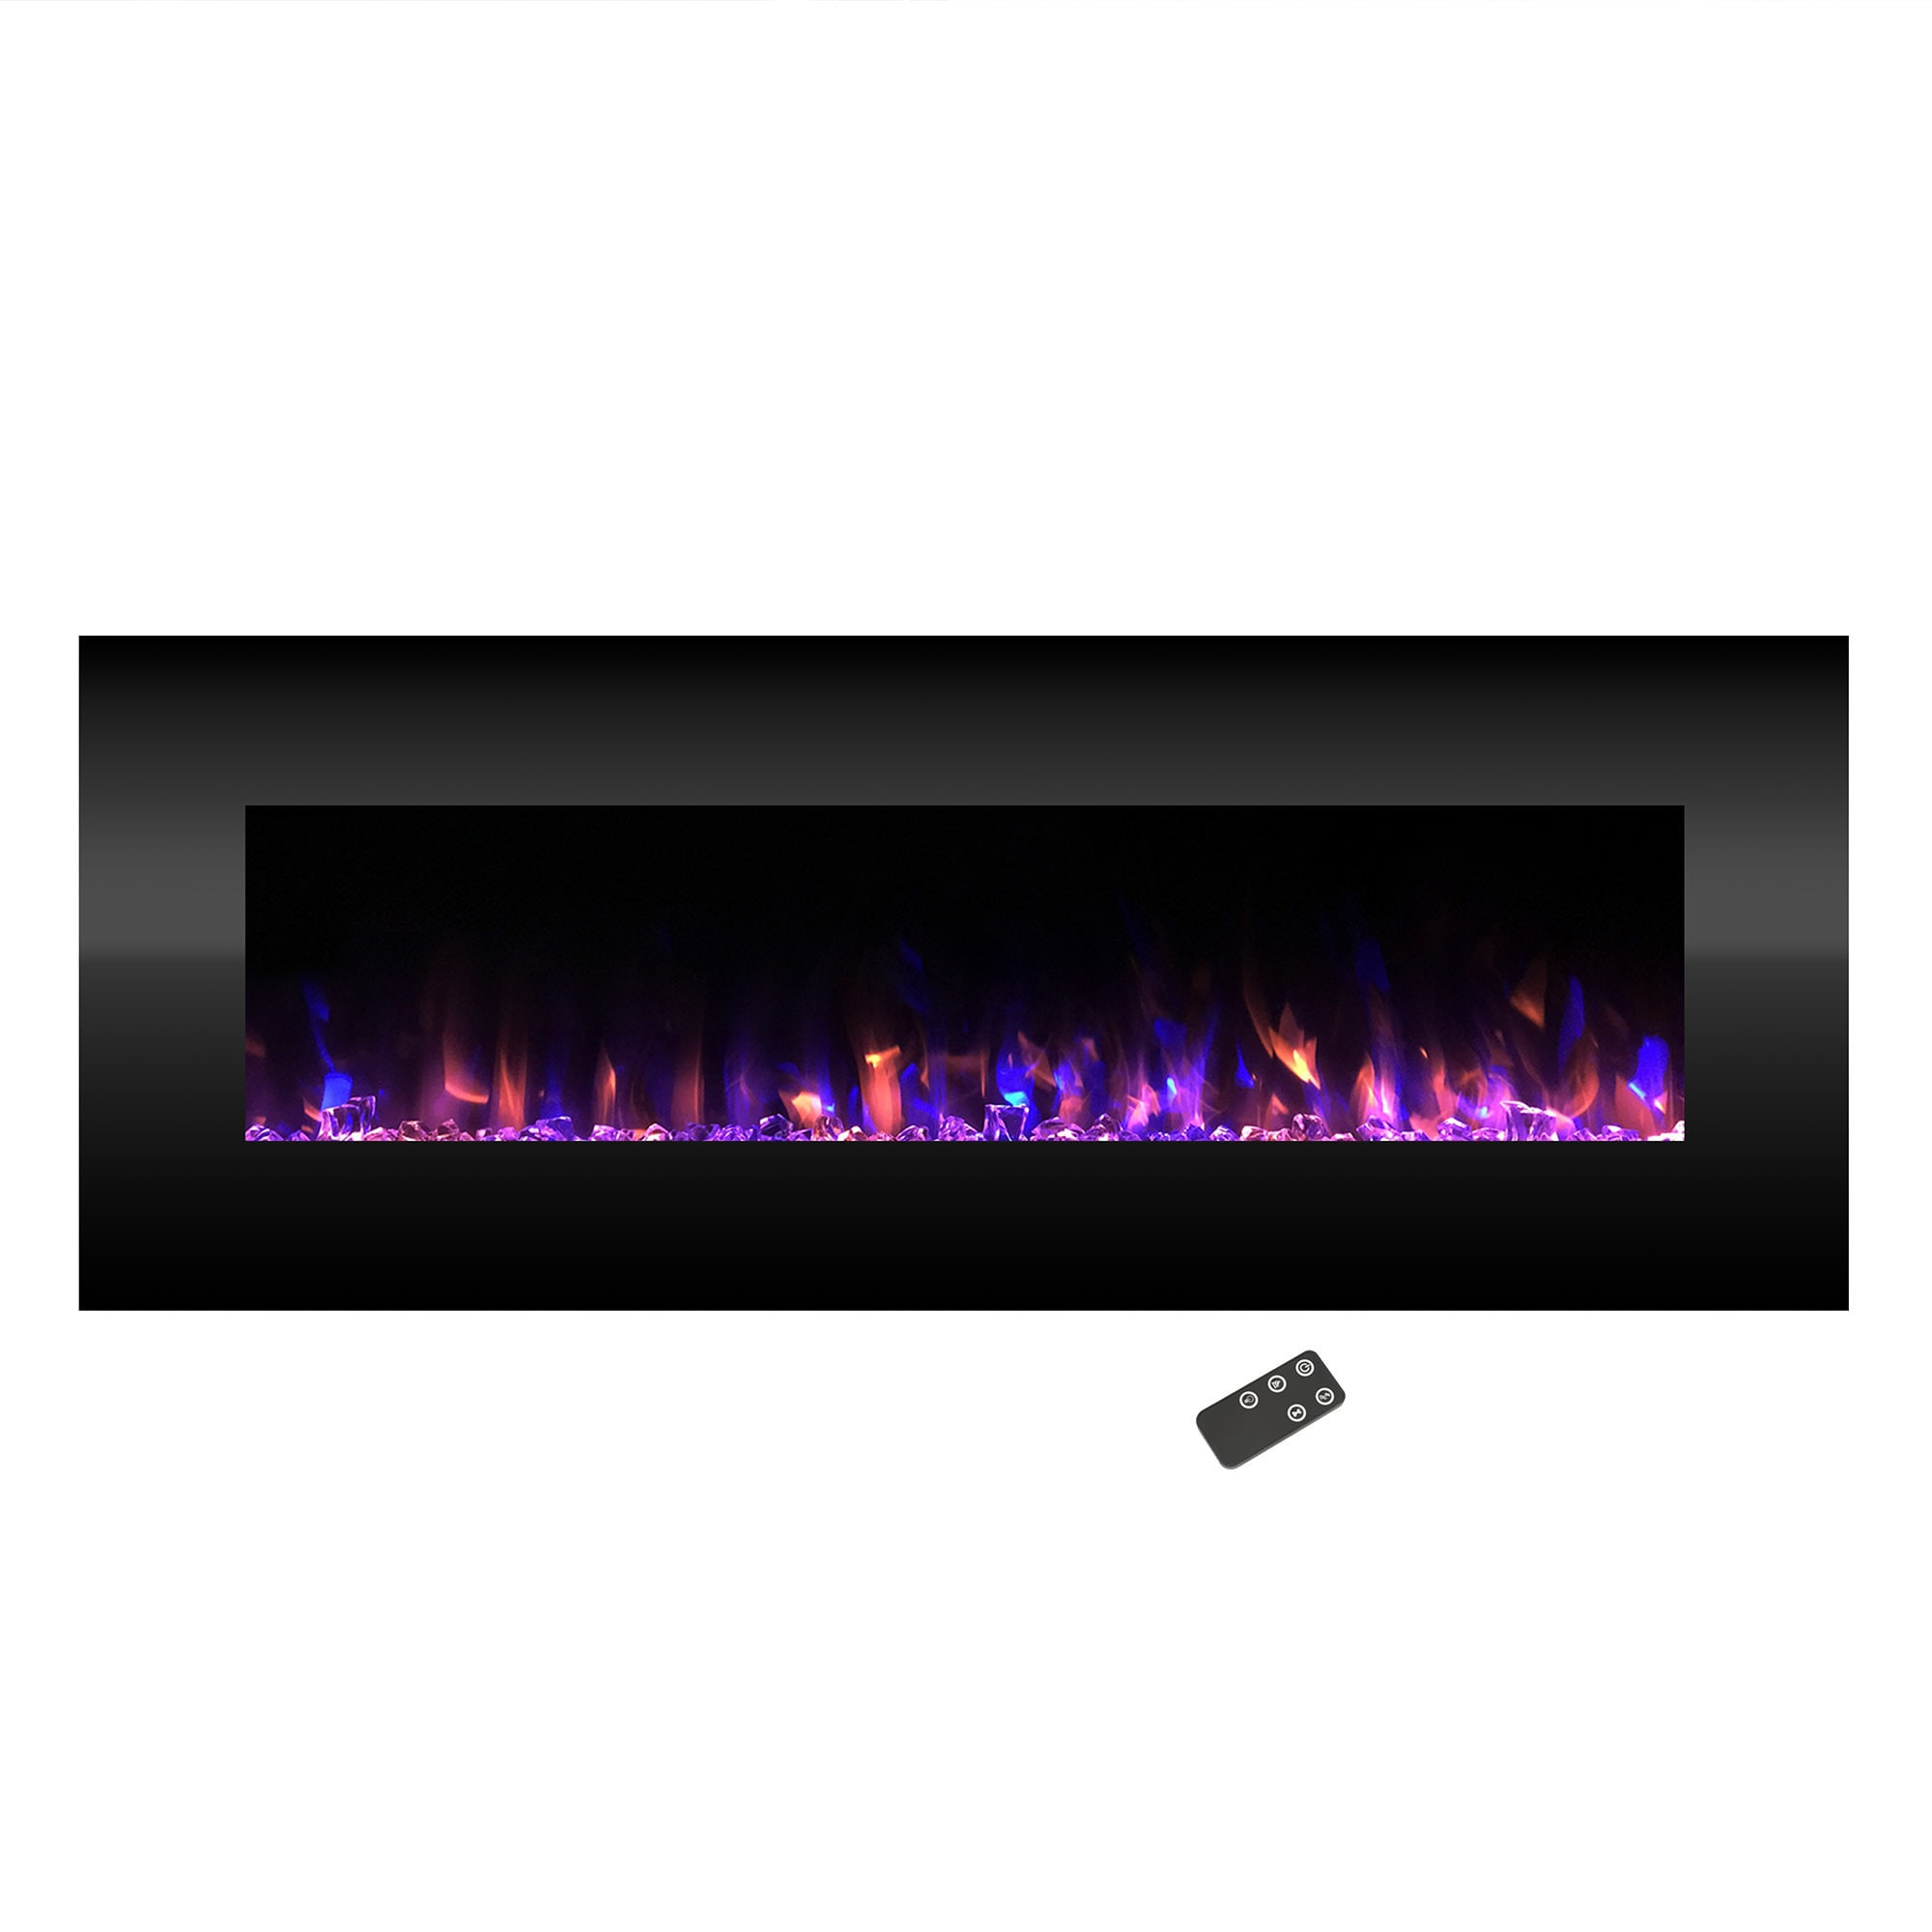 Electric Fireplace Wall Mounted Color Changing Led Fire And Ice Flames No Heat Remote Control 54 Inch By Northwest Free Shipping Today